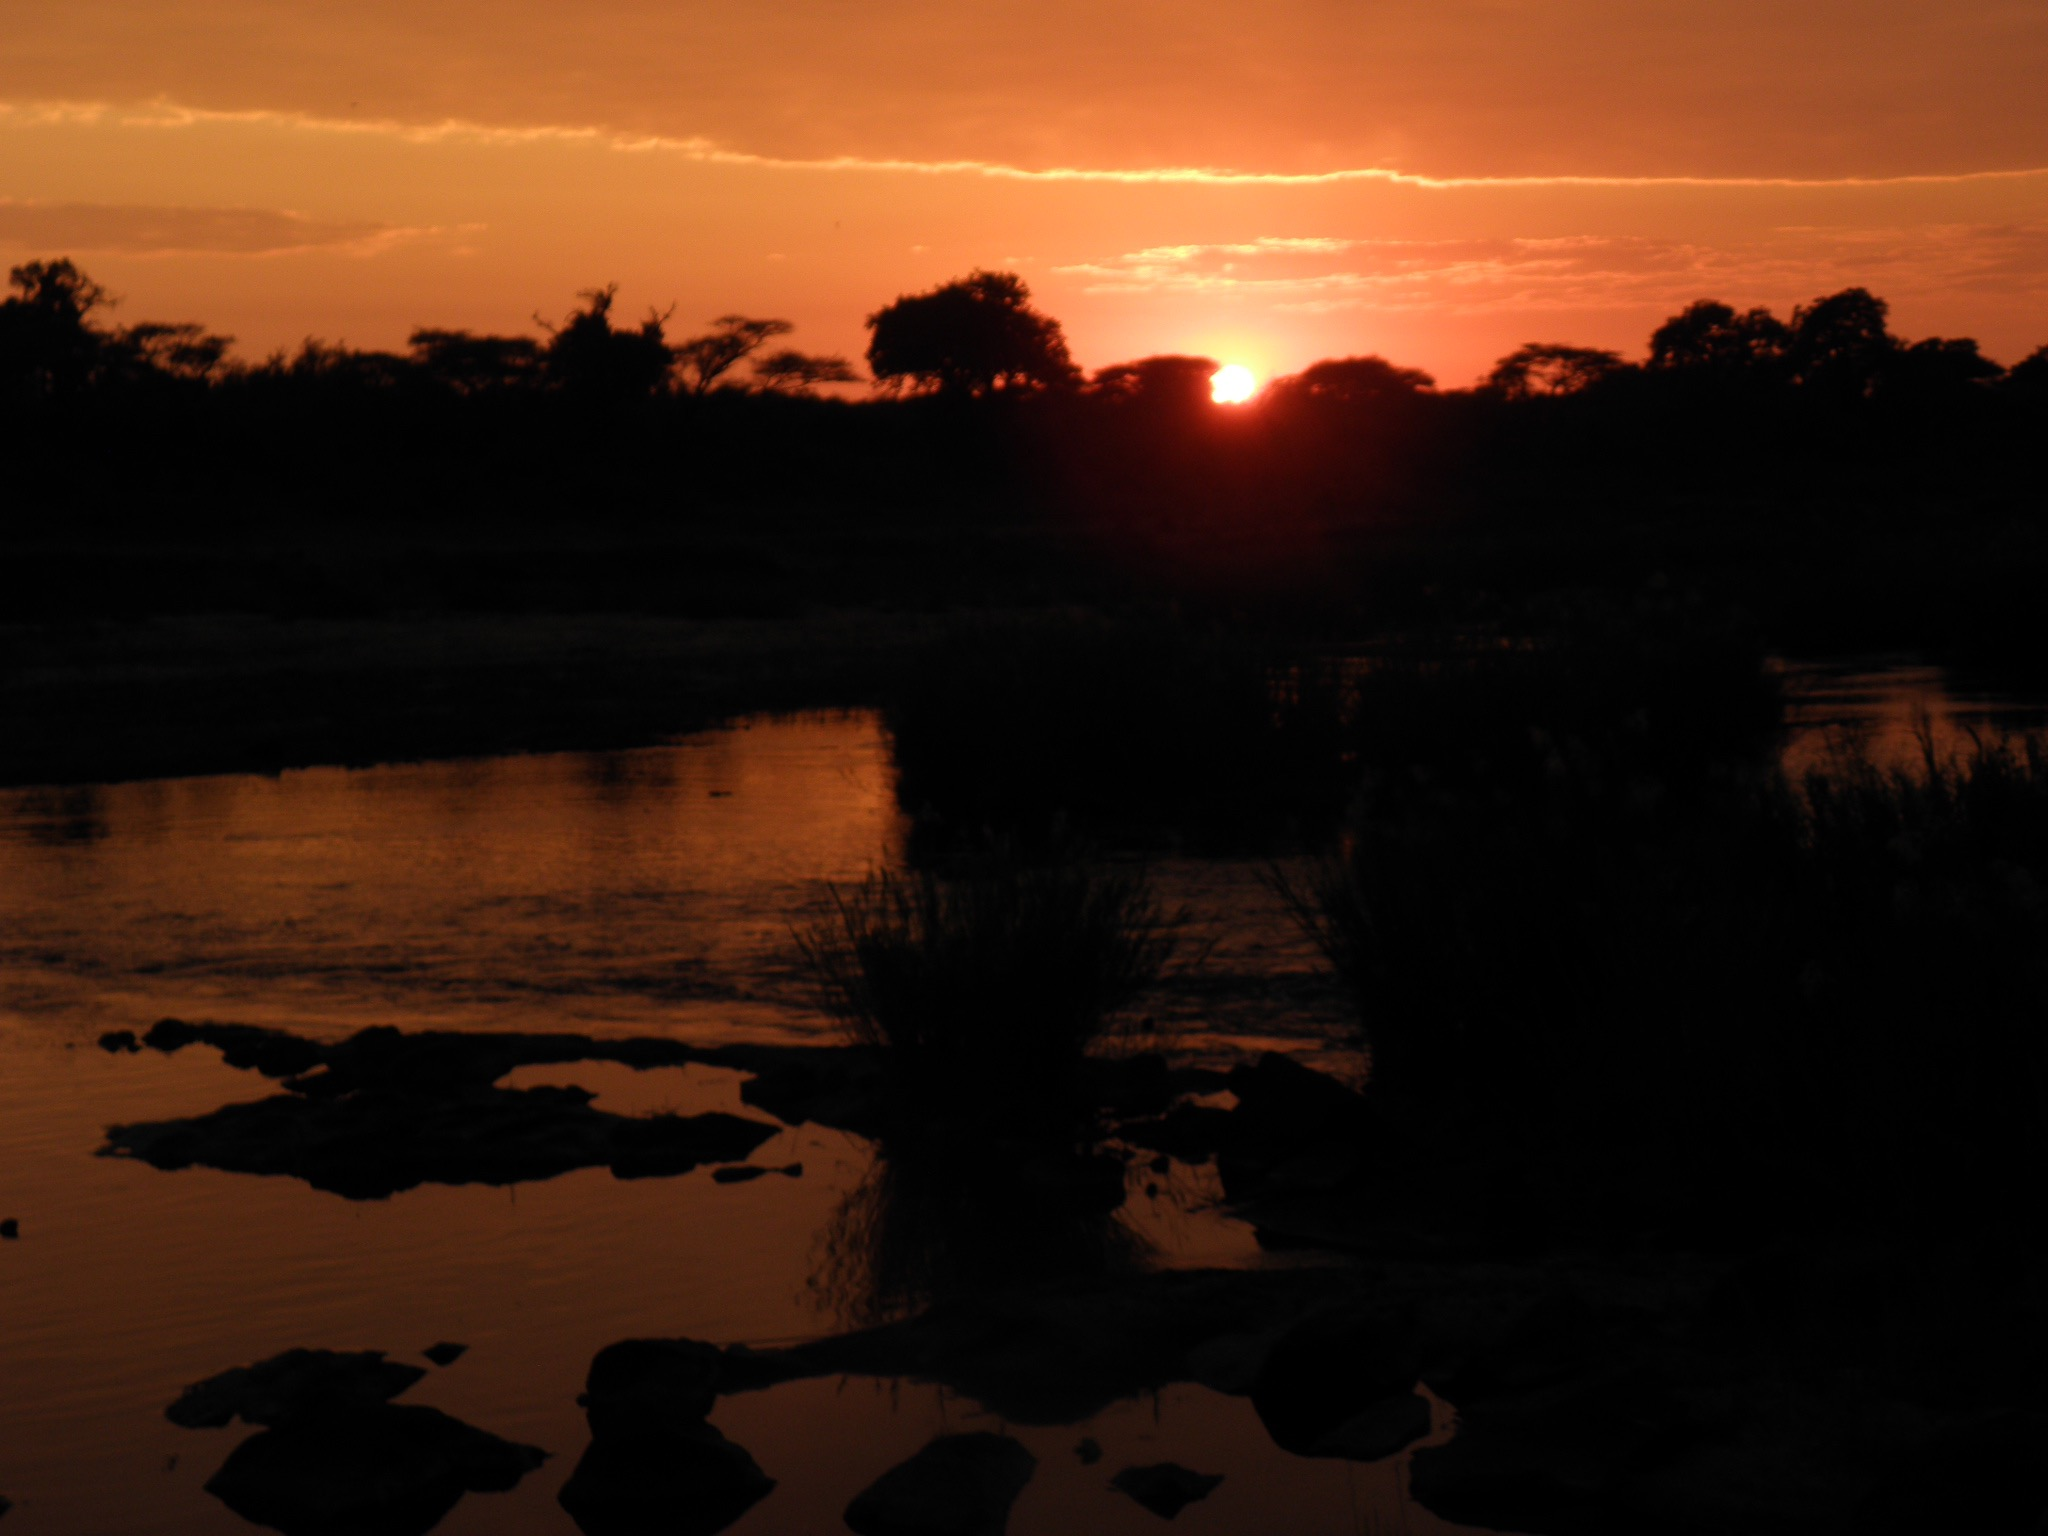 Sunrise on the Sabie River